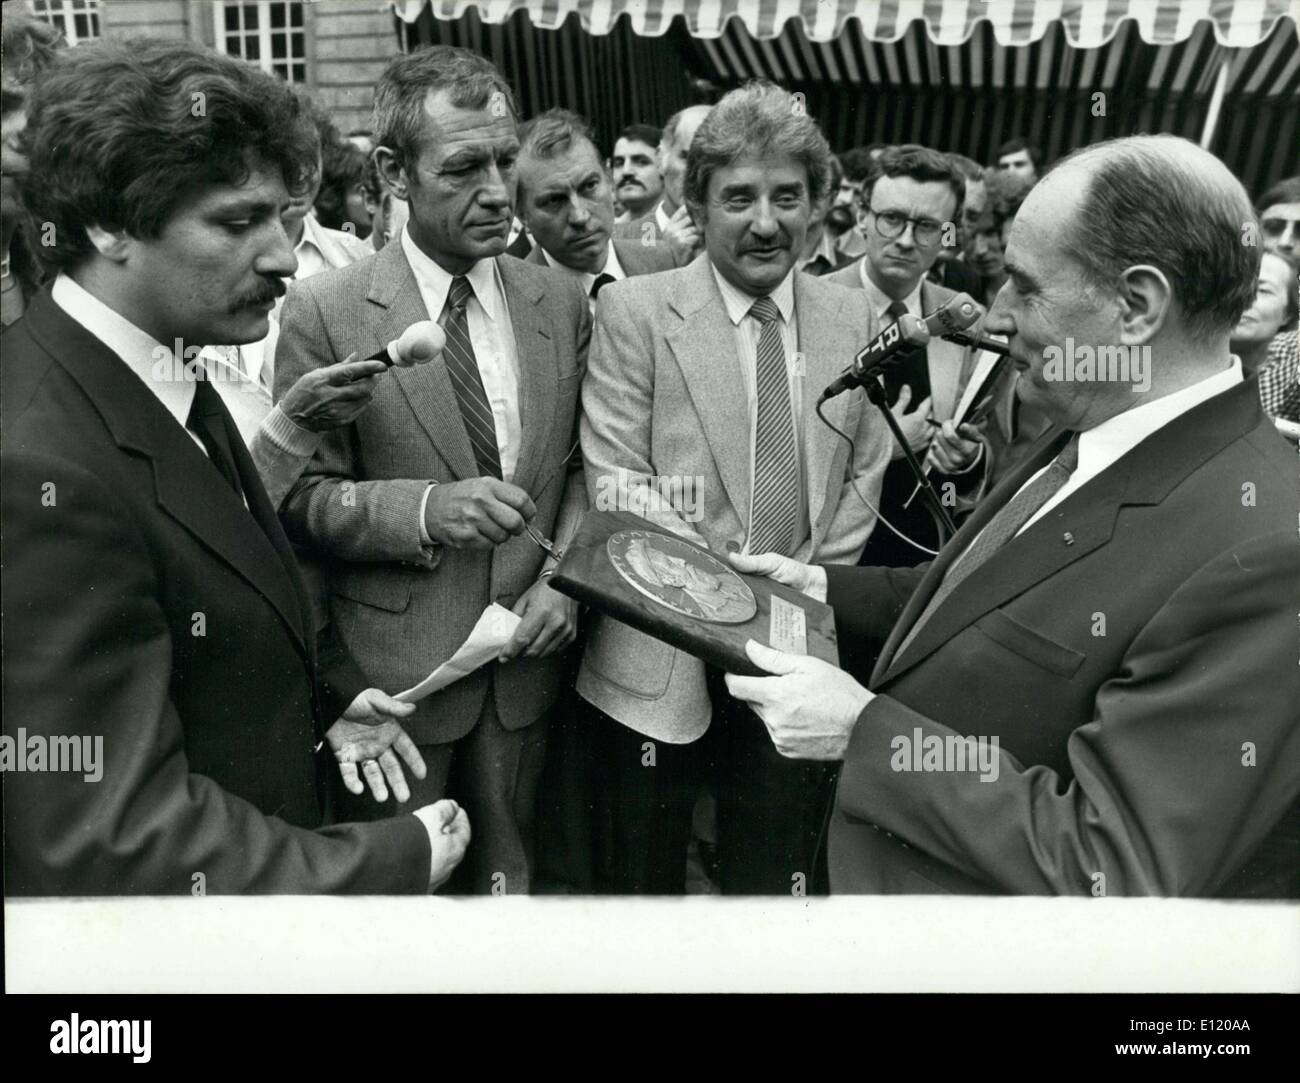 Jul. 23, 1981 - The visit occurred on July 22, a Wednesday, after he returned from Ottawa. - Stock Image